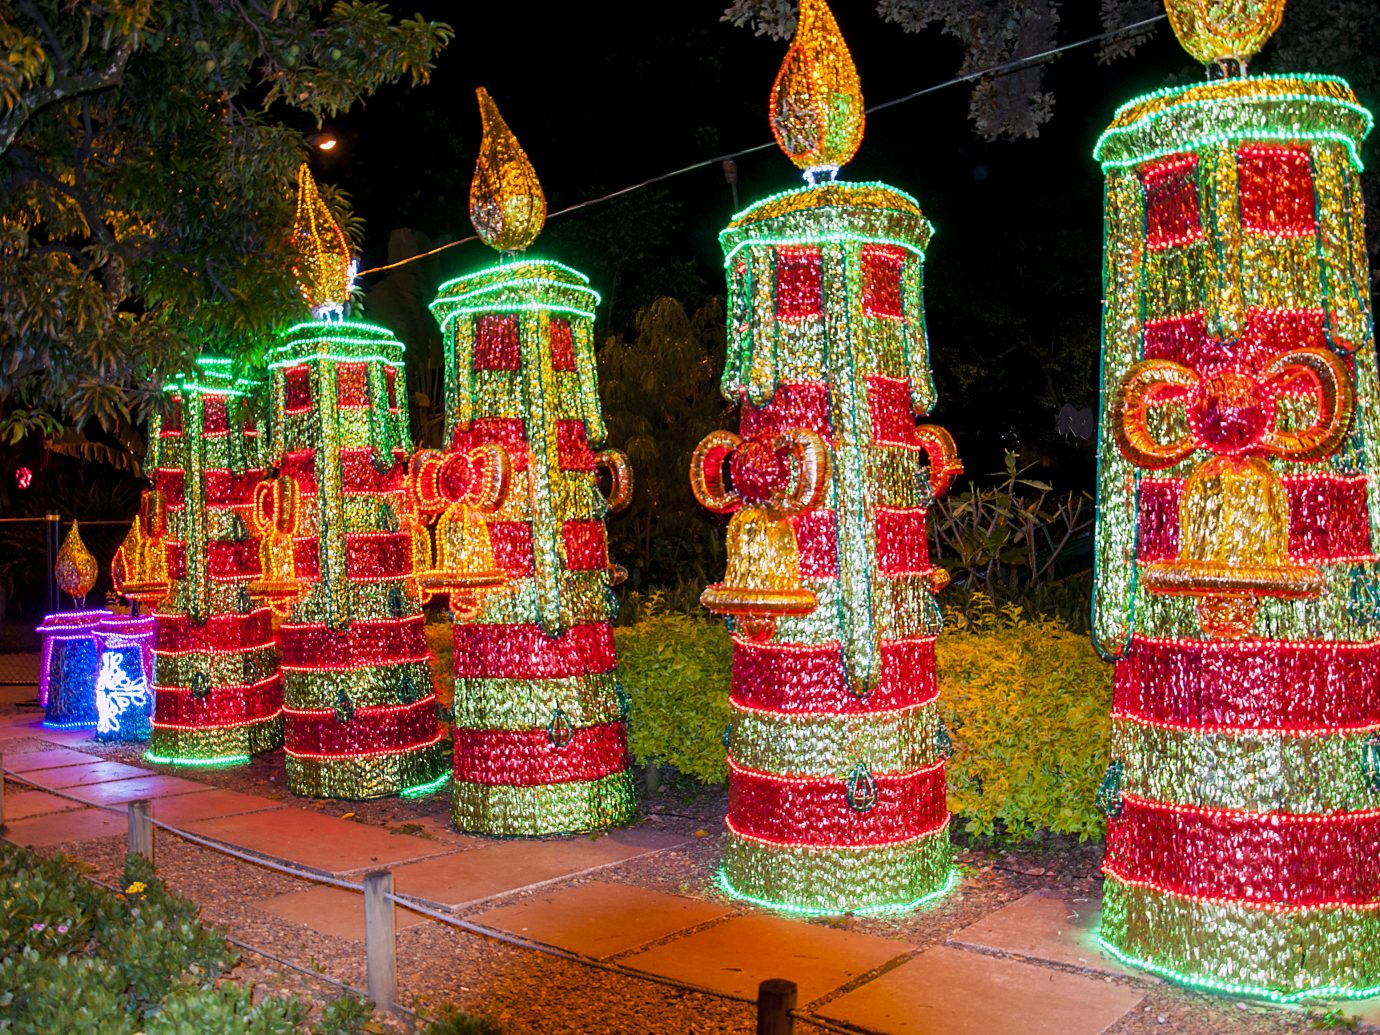 Some Christmas decoration at the North Park (Parque Norte) in Medellin, Colombia